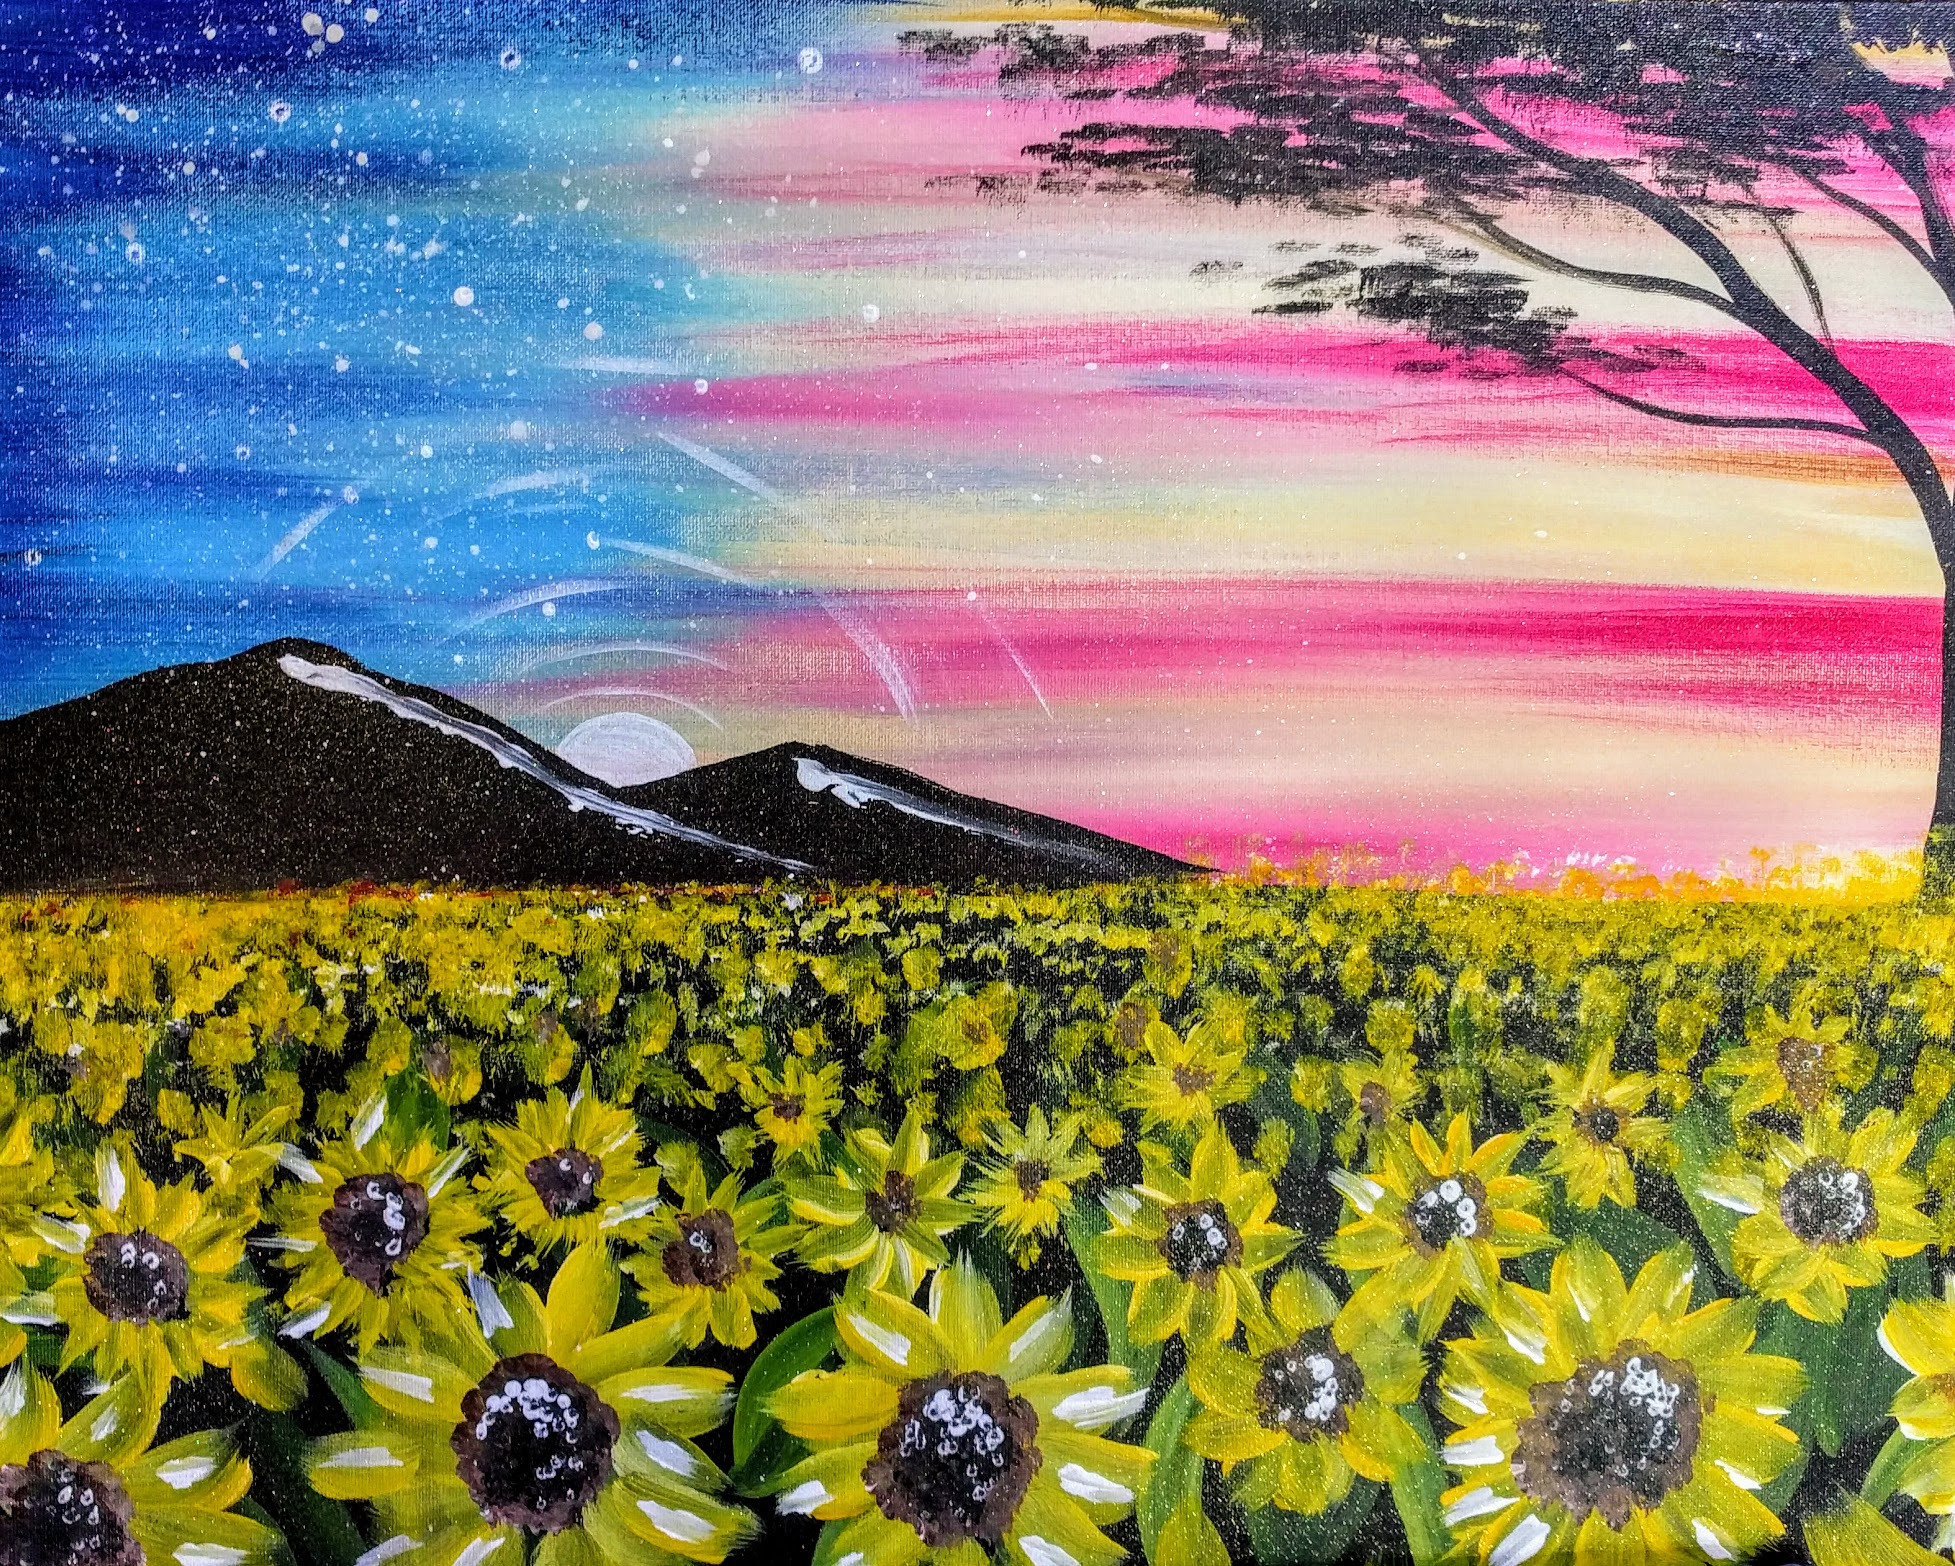 American Skies & Sunflower Fields